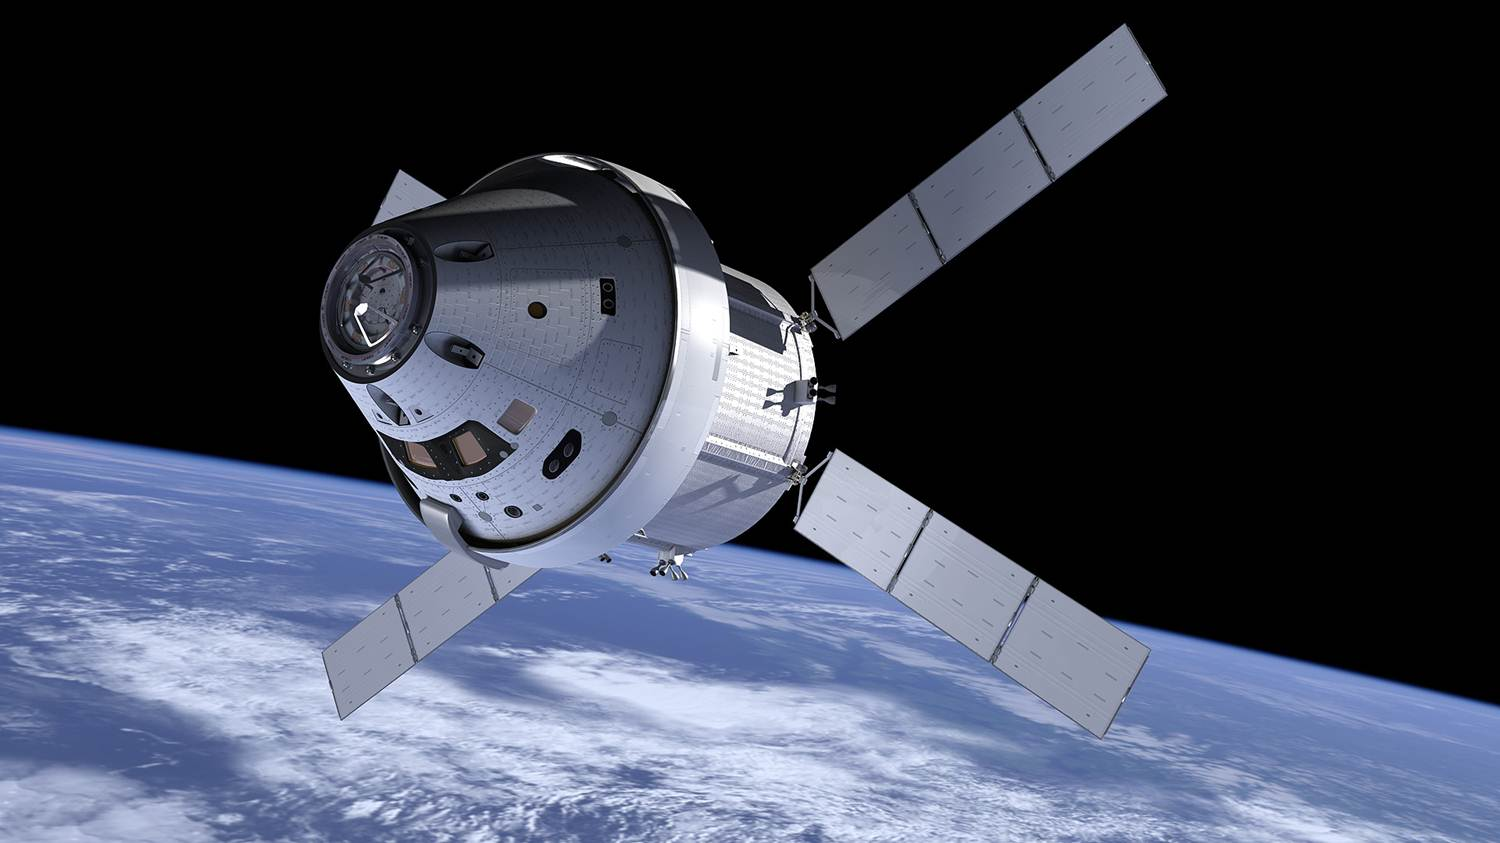 The Orion spacecraft: made possible with advanced composite materials.